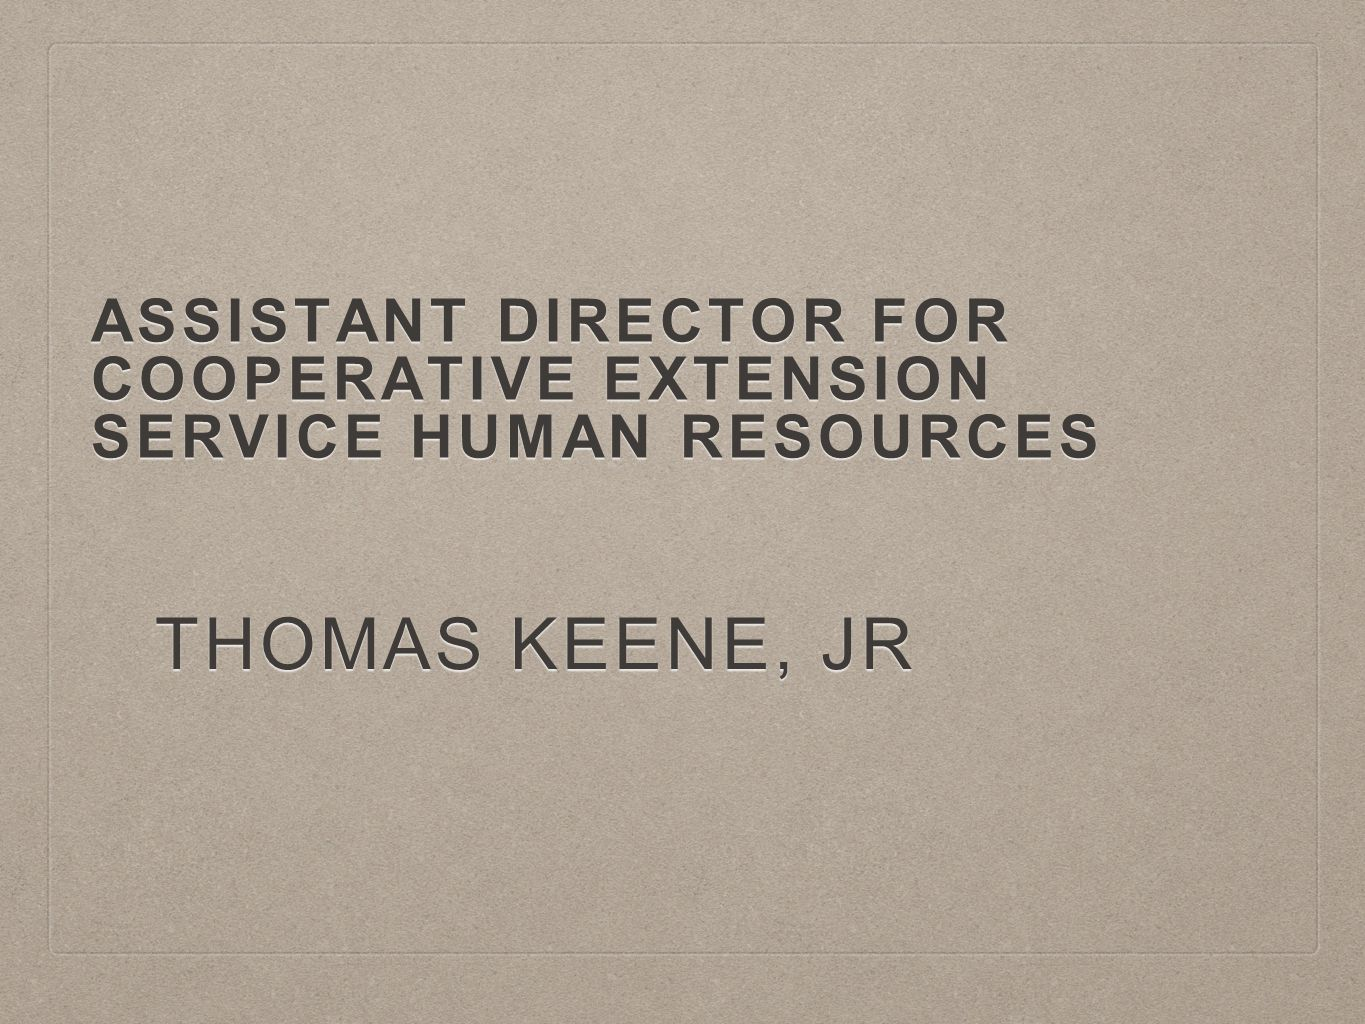 ASSISTANT DIRECTOR FOR COOPERATIVE EXTENSION SERVICE HUMAN RESOURCES THOMAS KEENE, JR